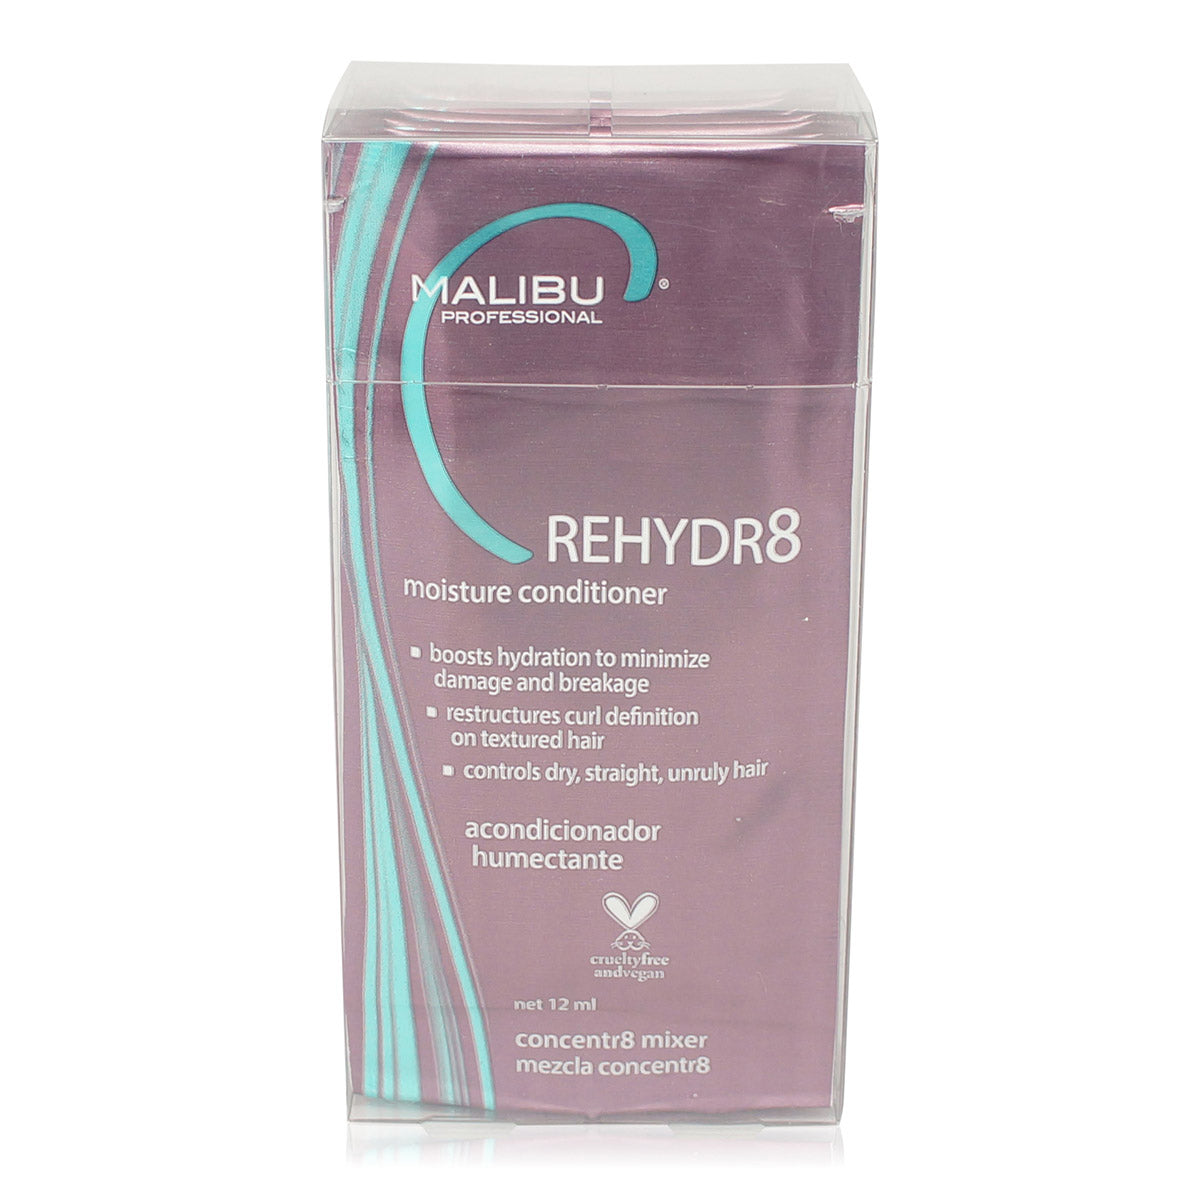 MALIBU ~ REHYDR8 MOISTURE CONDITIONER BOX OF 6